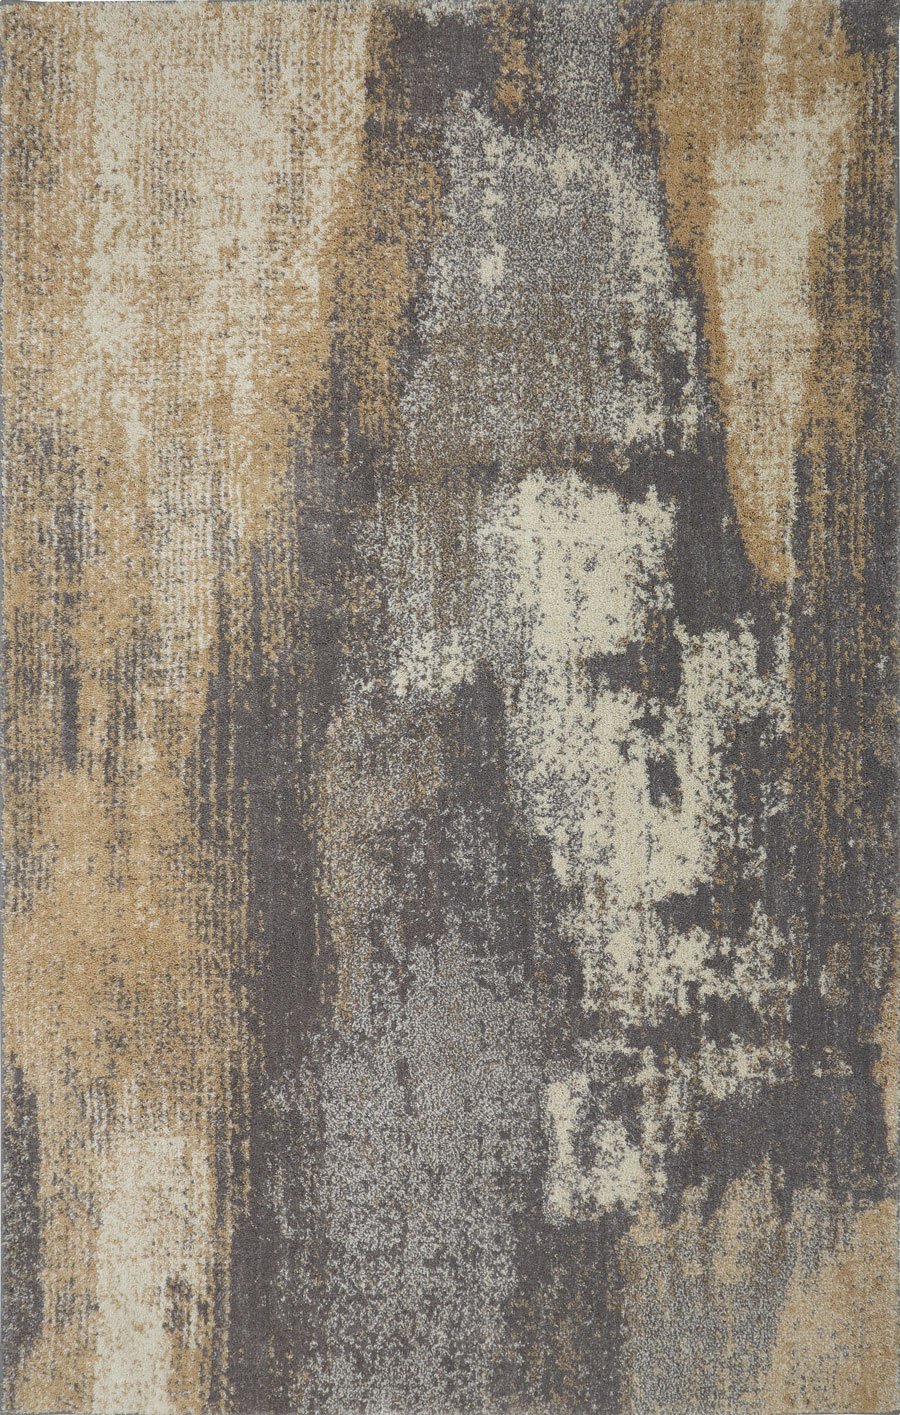 Berkshire Truro Grey 90634 94011 Area Rug By American Rug